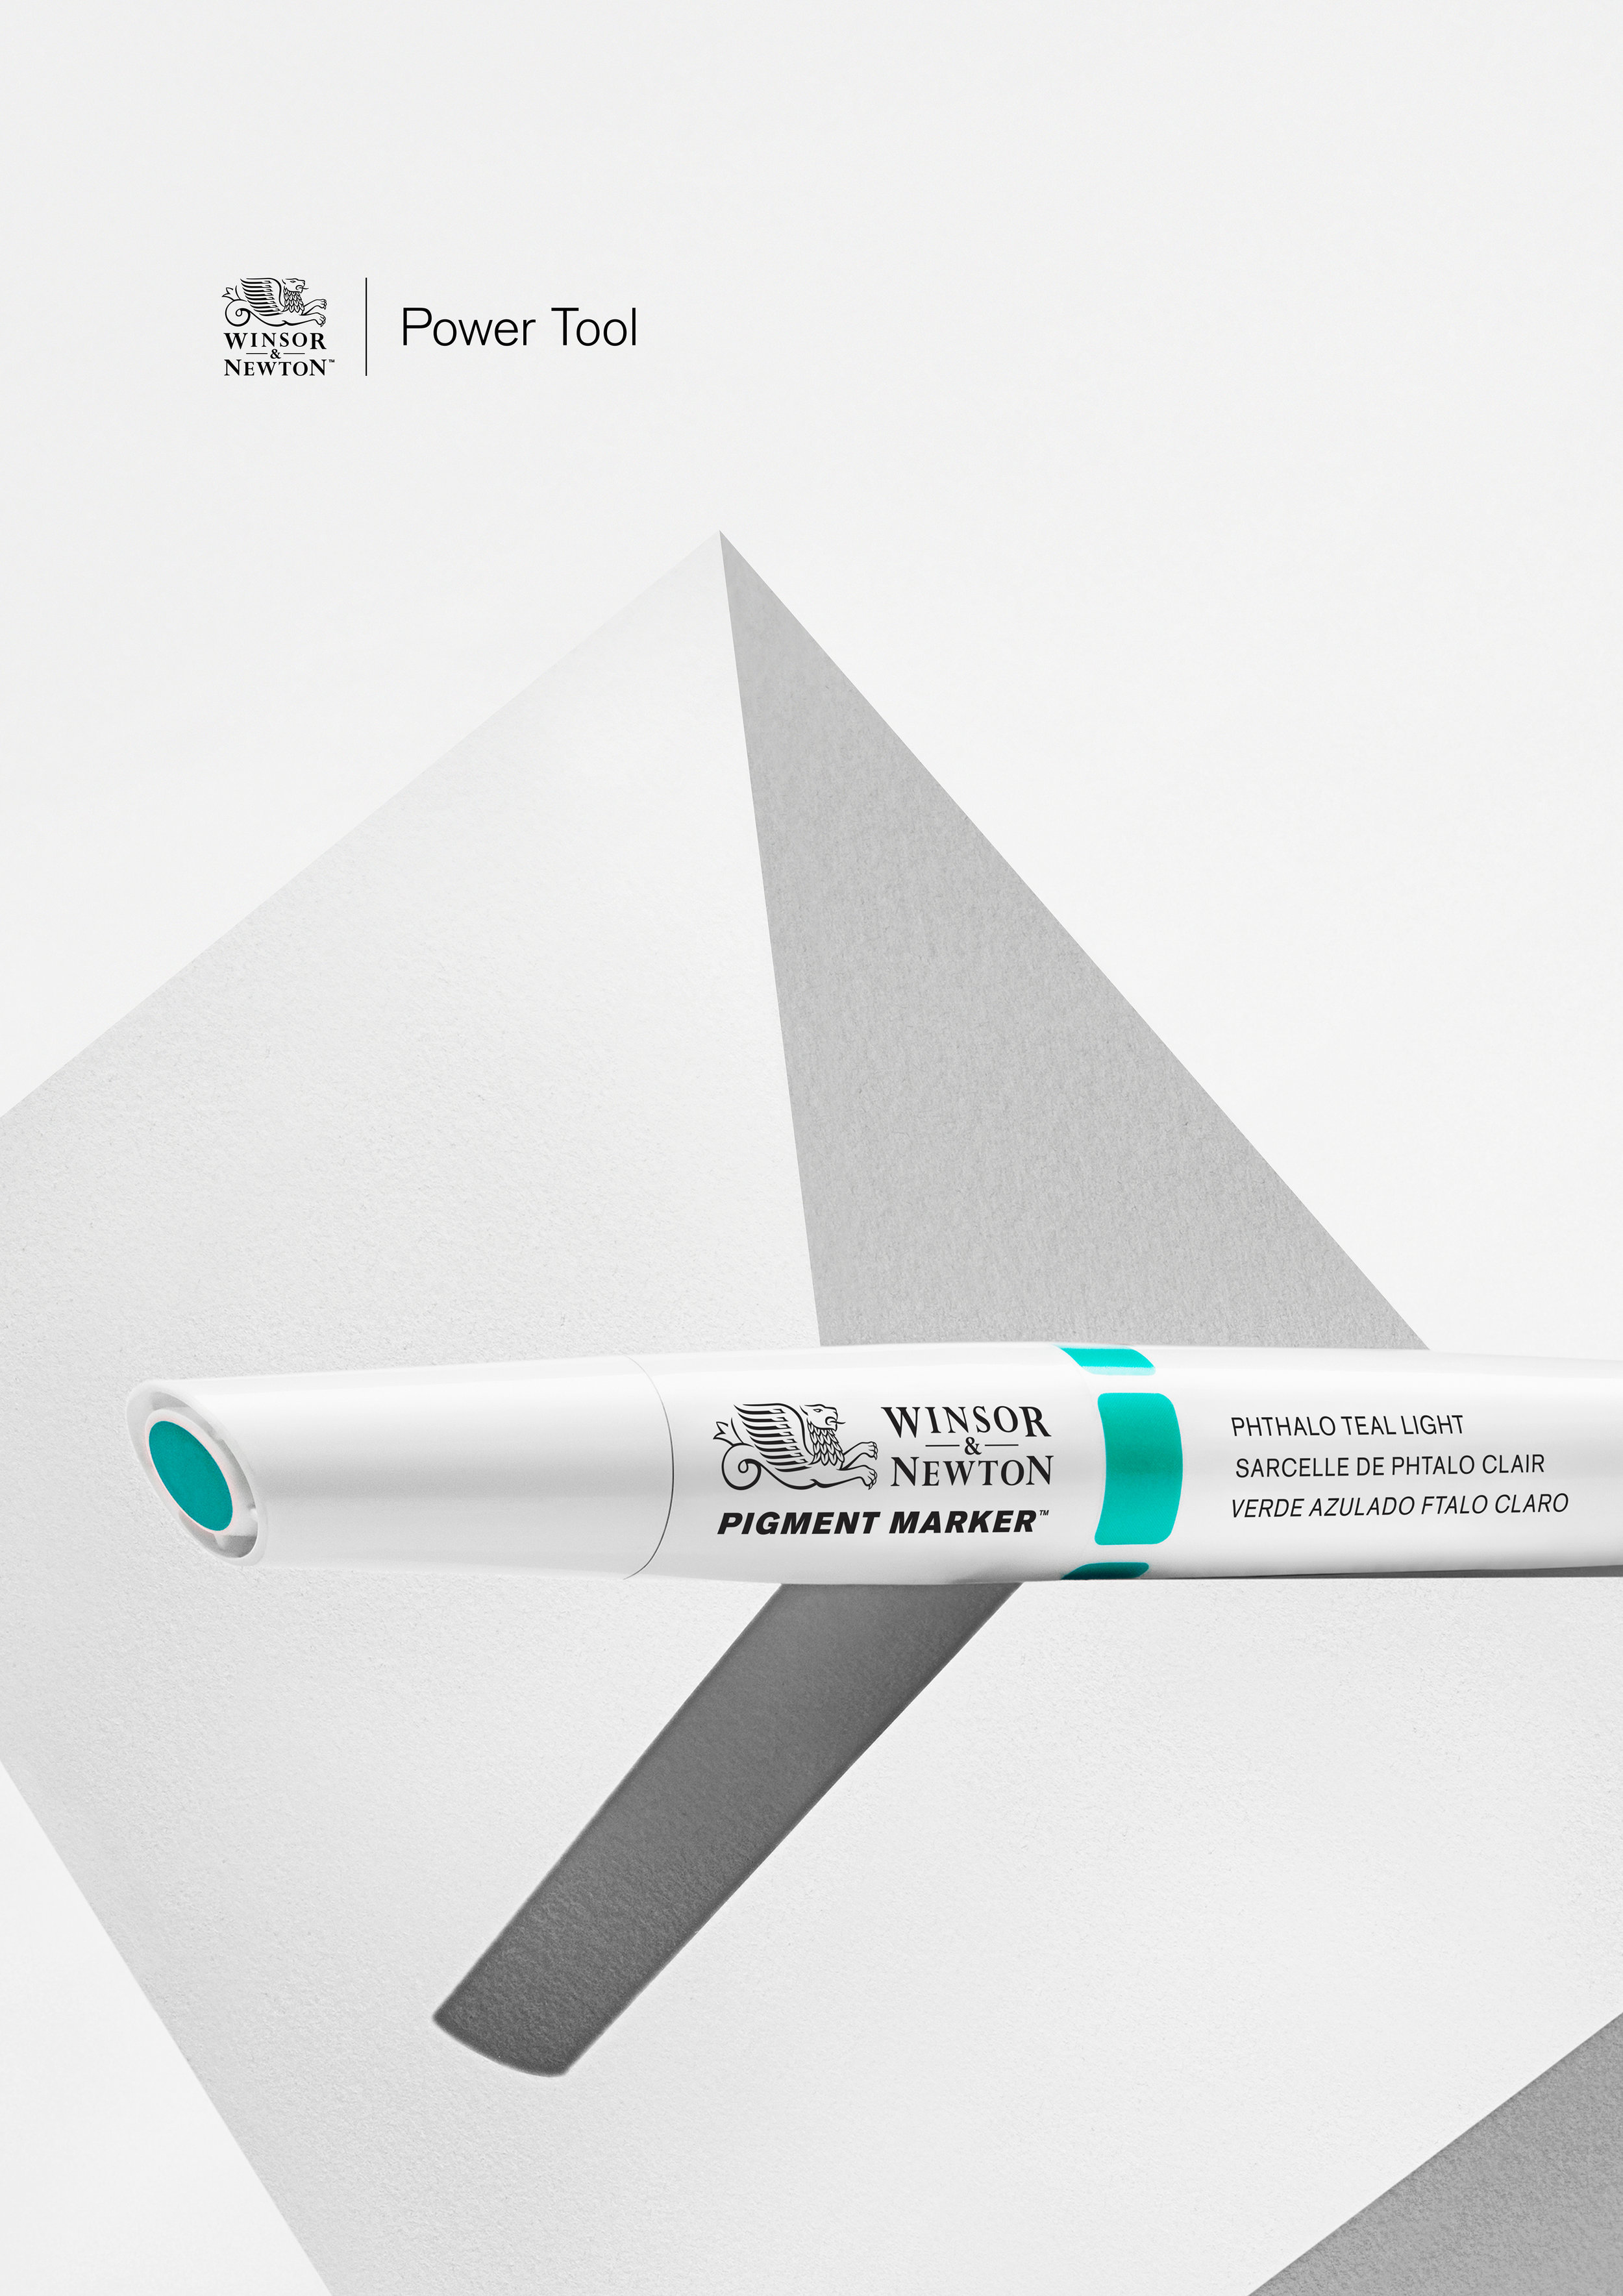 COL0019_Pigment Marker Poster_sml_AW6.jpg